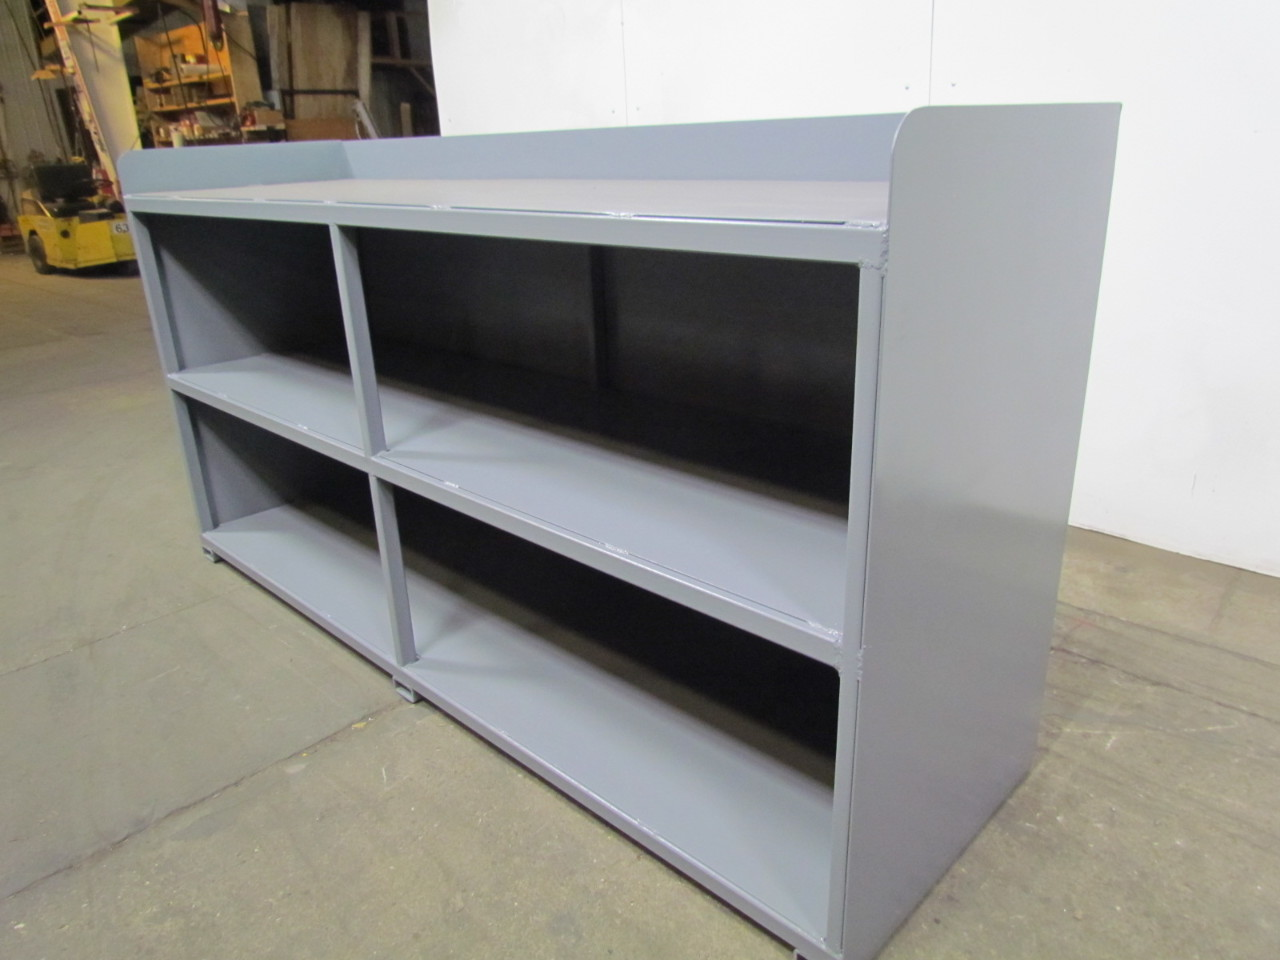 Work Bench Steel 27 Quot X85 Quot Assembly Welding Table W Shelves